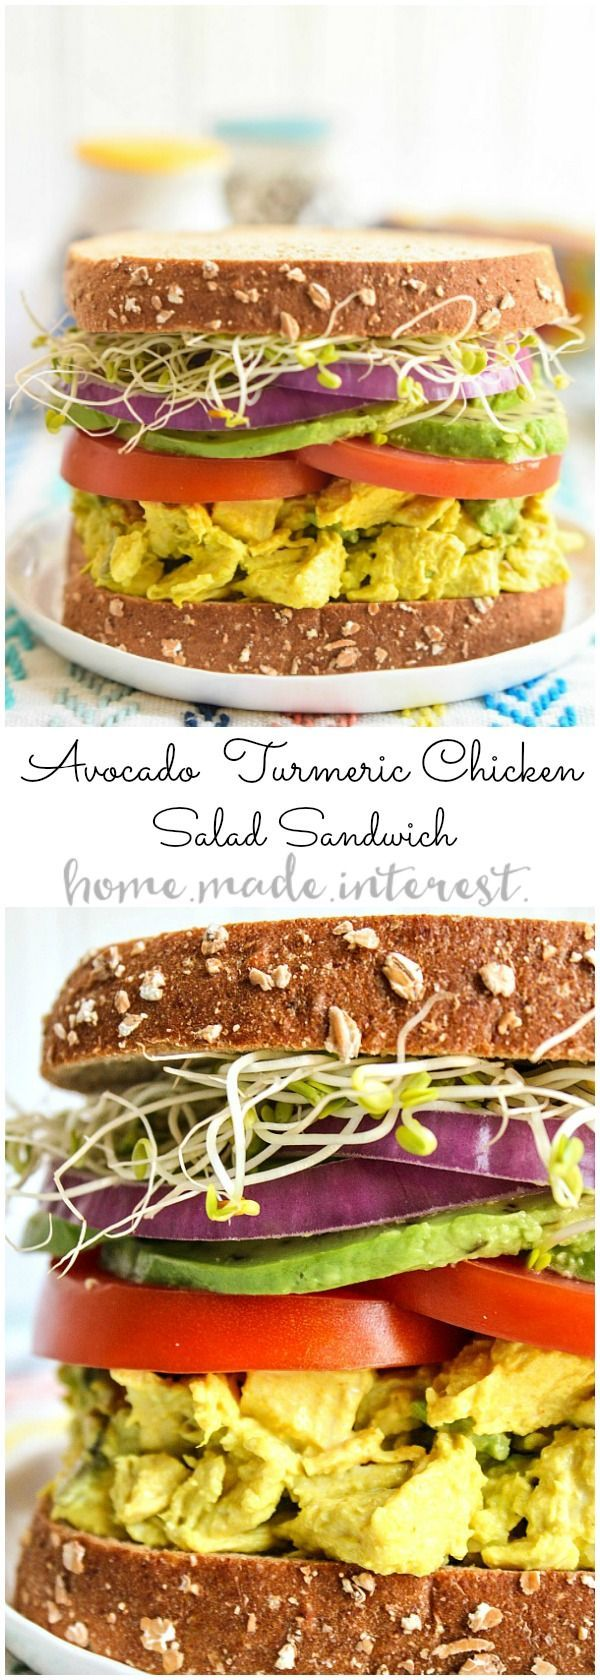 This wholesome sandwich is a healthy lunch recipe that is filled with flavor. The turmeric chicken salad base is mashed with avocados to make a creamy lunch salad that is healthy and full good fats. The avocado turmeric chicken salad is sandwiched between two pieces of sprouted bread for a filling lunch recipe! HarvestBlends | ad